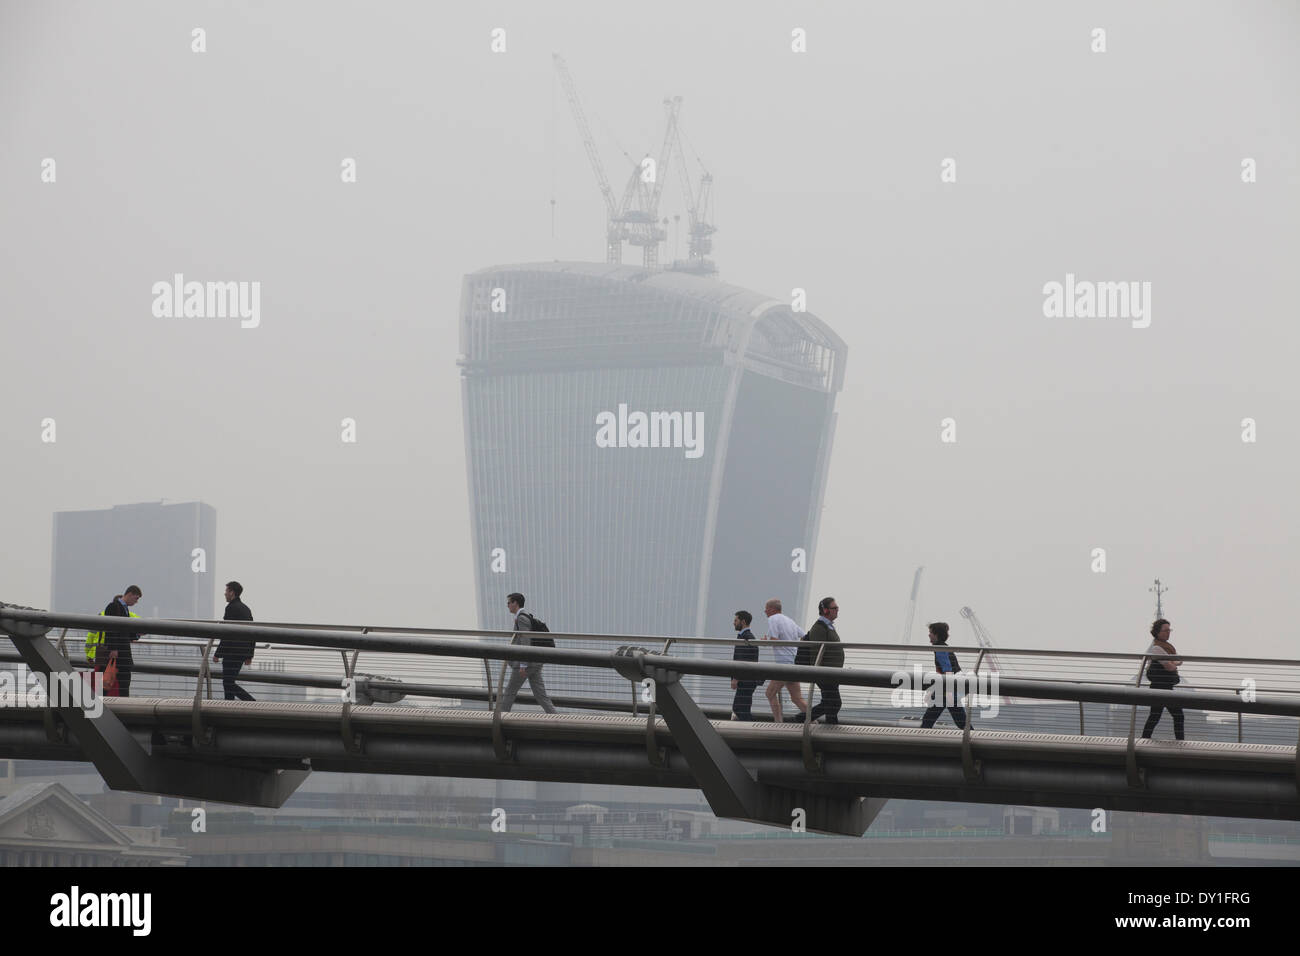 London, UK. 3rd April, 2014. London Smog: Millennium Bridge, City of London, London, UK Commuters make their way across the Millennium Bridge with the Walkie Talkie building in finance district in the background is shrouded in smog, whilst the London Smog, and red dust swept up from the Sahara continue to cause high levels of air pollution across the capital. Scores of flights have been cancelled and people have been advised to stay indoors if they suffer from asthma or heart conditions. Credit:  Jeff Gilbert/Alamy Live News - Stock Image